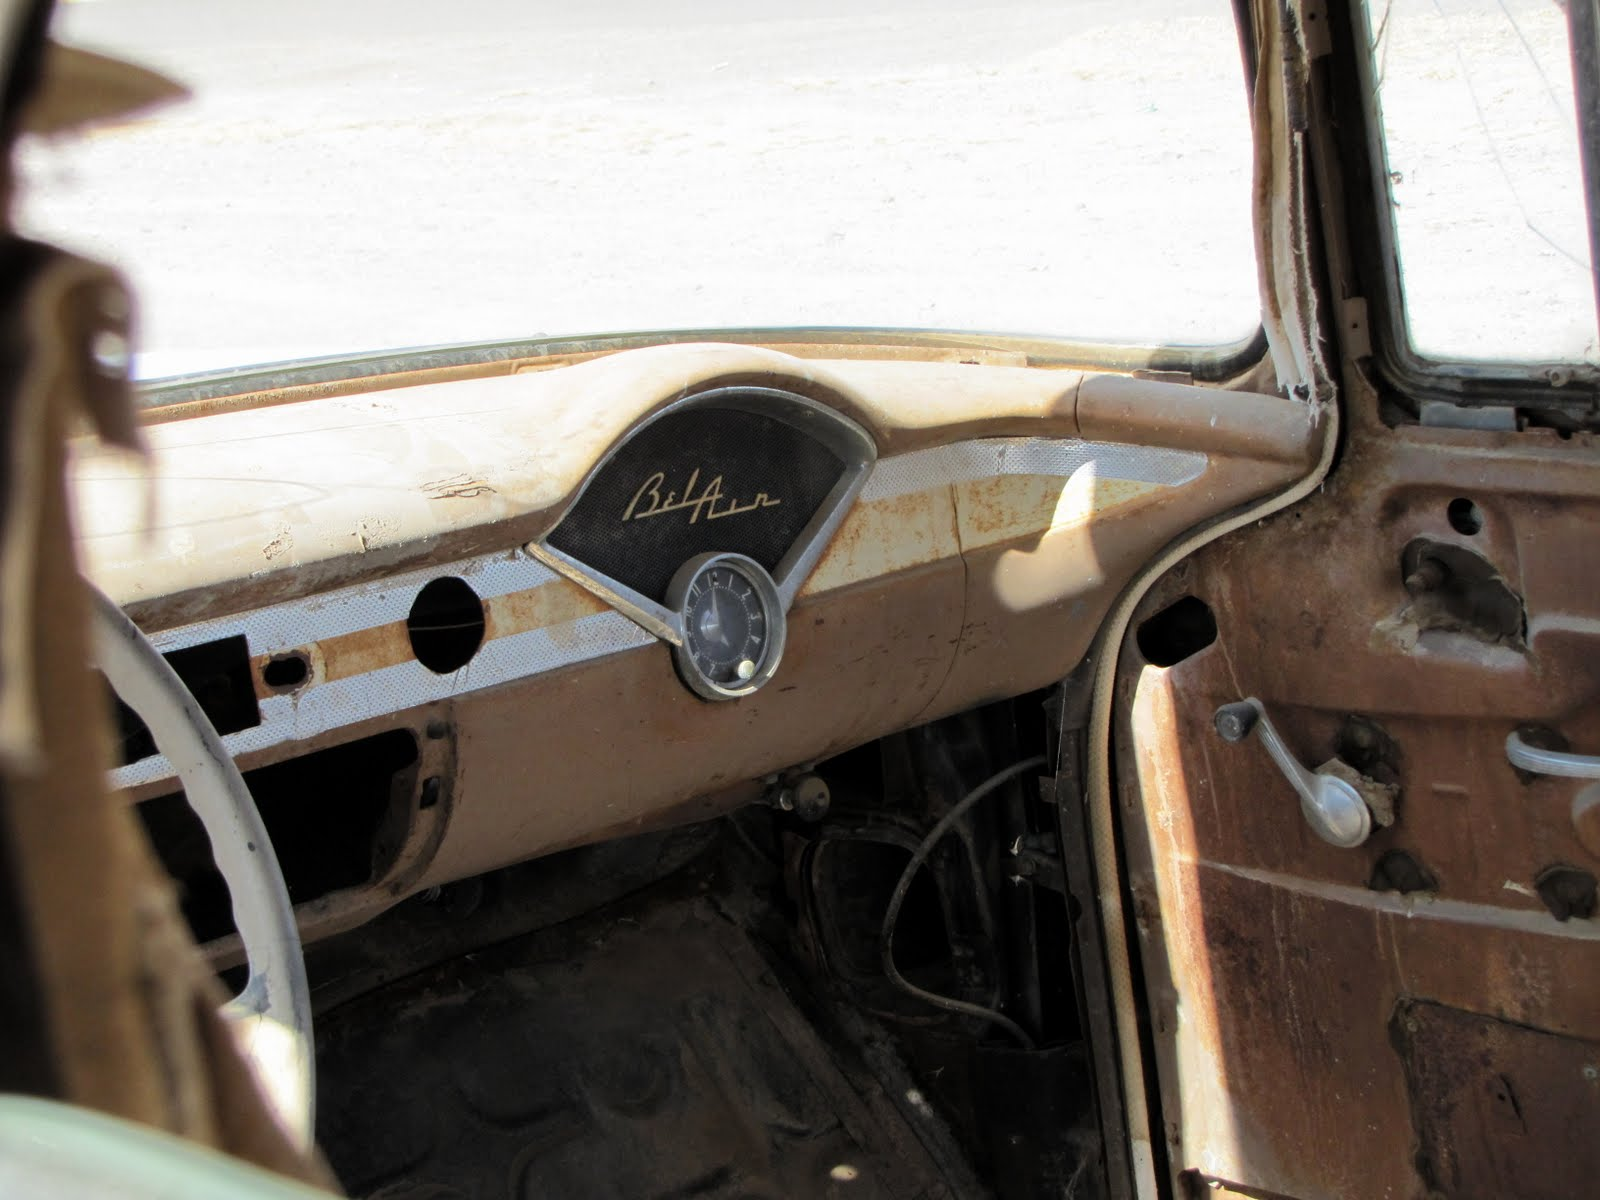 Bel Air Dashboard for the passenger seat, 1956 Chevrolet Bel Air